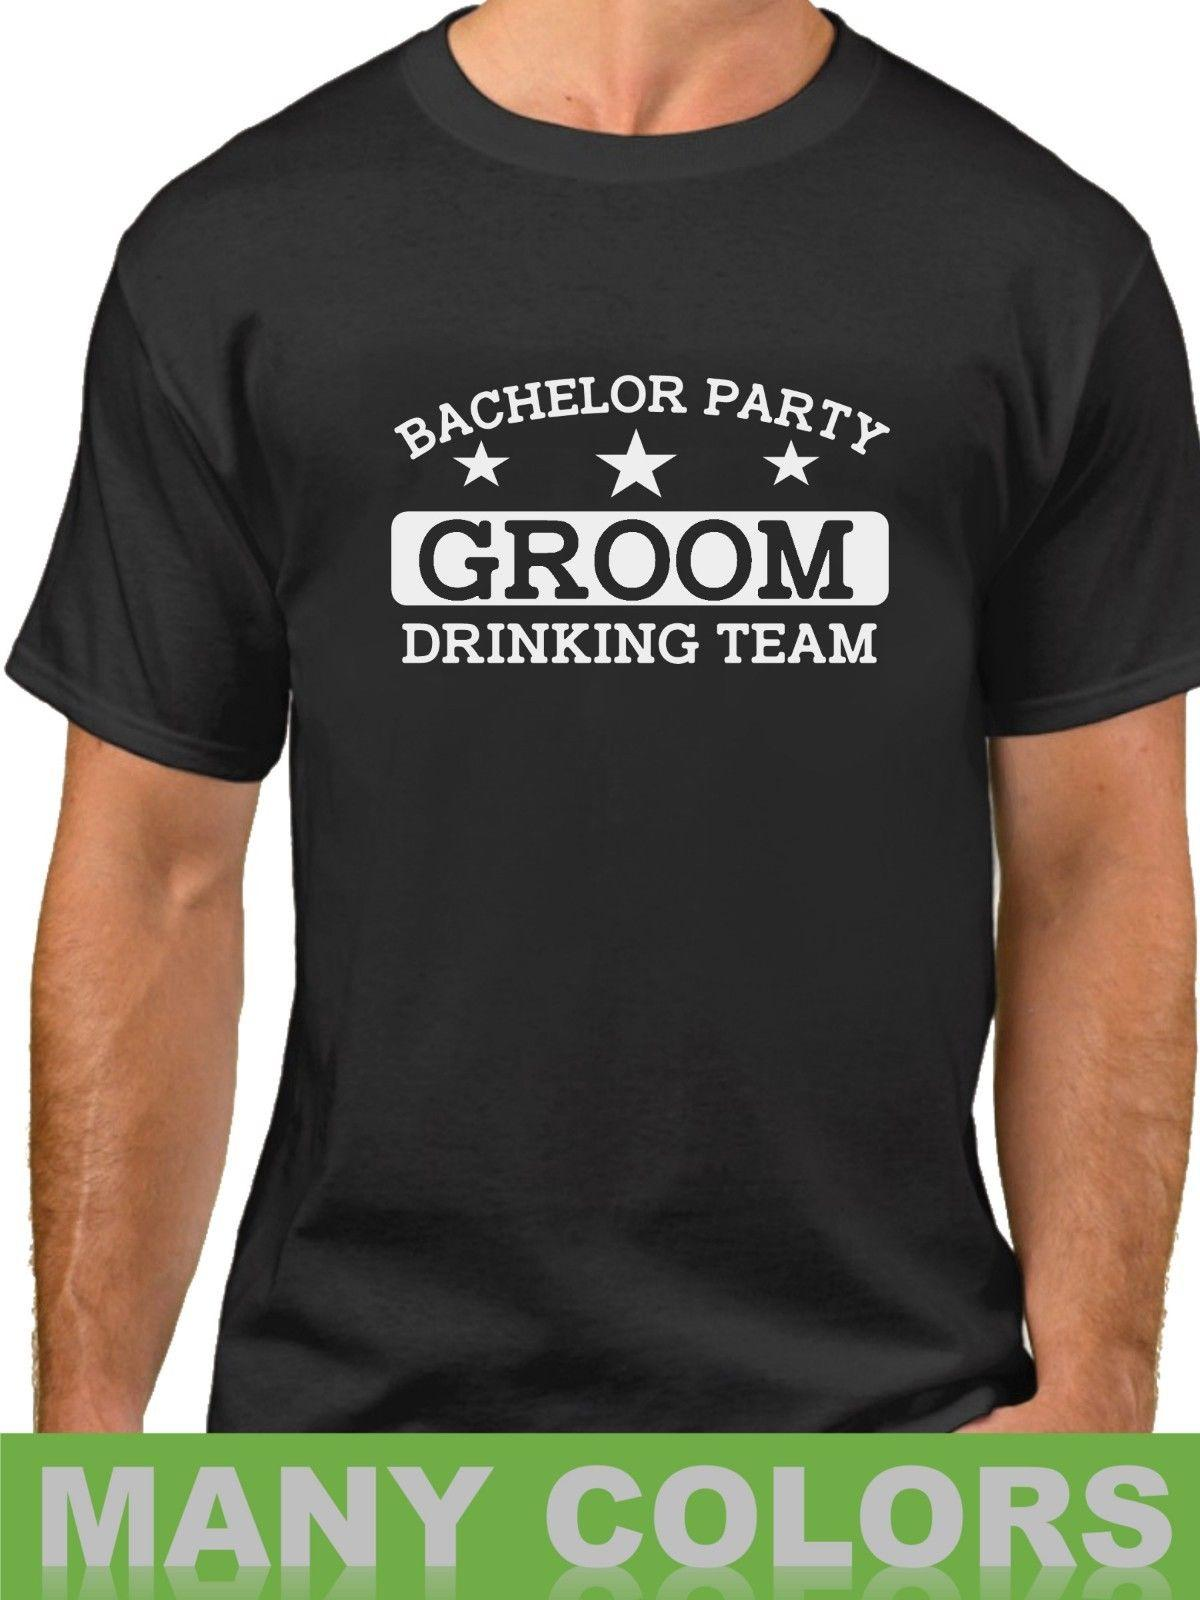 2511c229 Bachelor Party Groom Drinking Team Shirt Funny T Shirt Groom'S Brew Crew Tee  Funny T Shirts For Women Funny Shirt From Beautifulfuture56, $11.63|  DHgate.Com